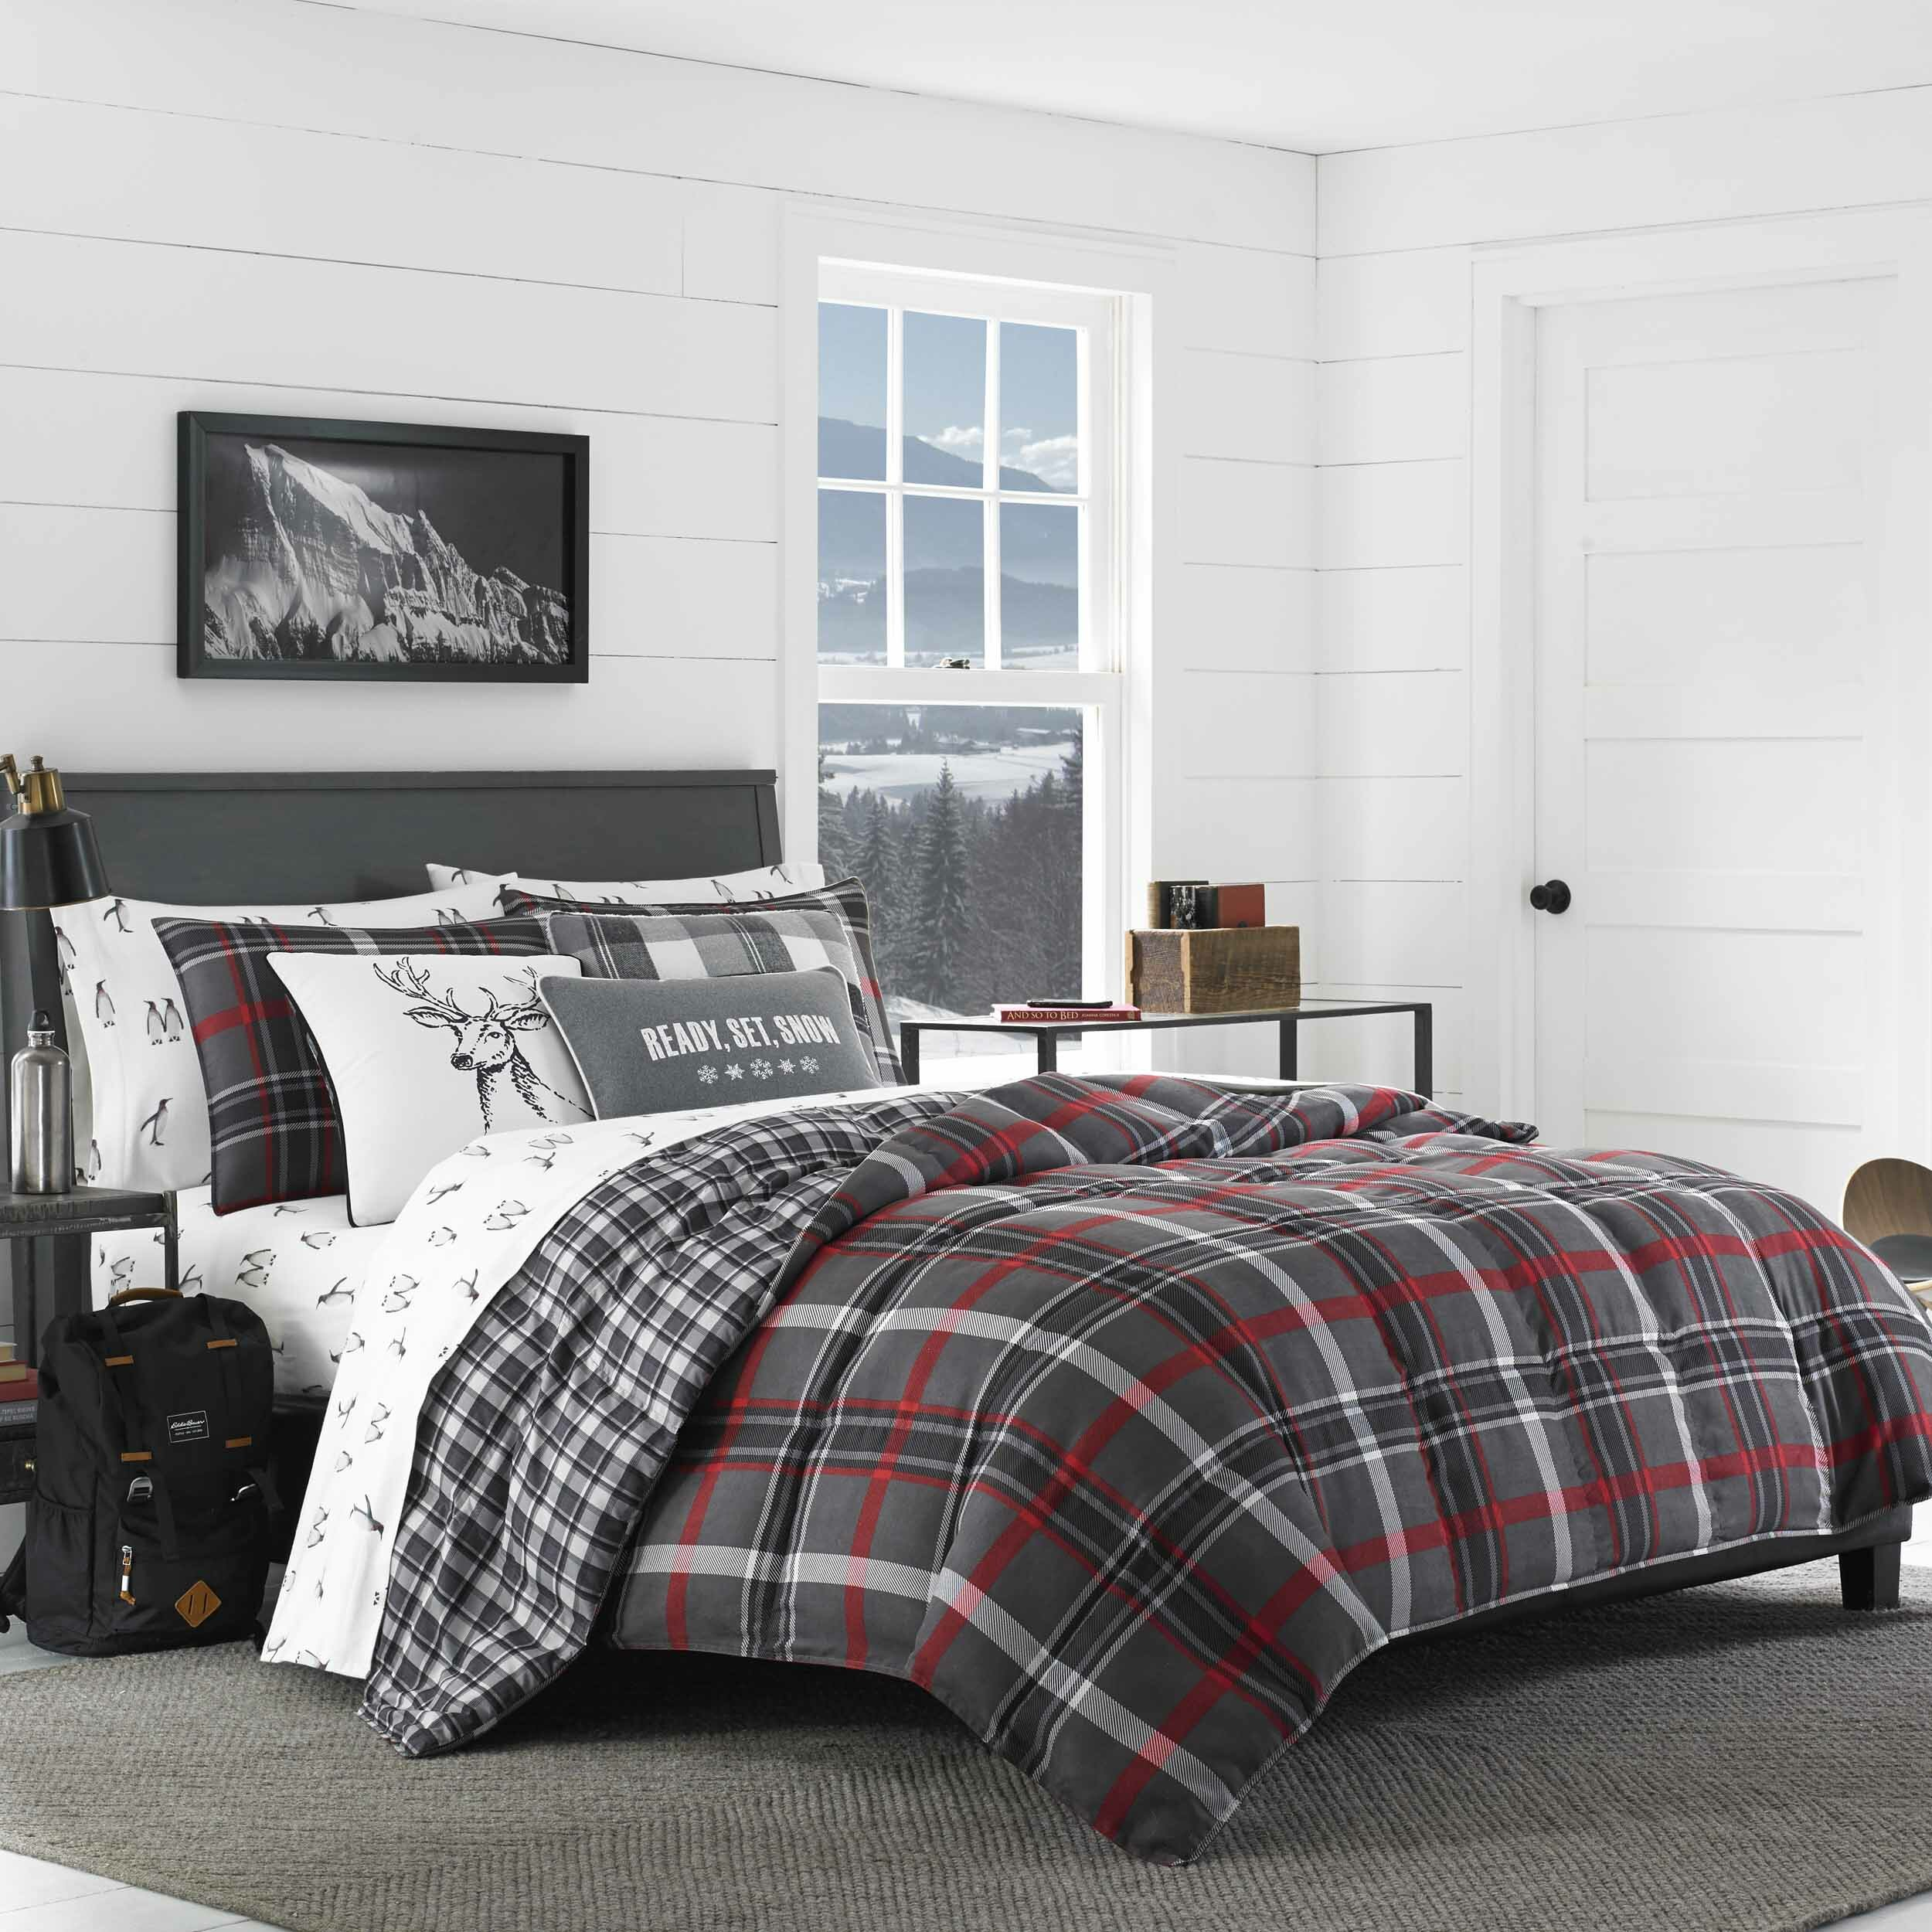 plaid stirring white nursery black check of twin and andte woolrich size hadley crib ideas boys set photo checkered decorating rustic sale baby room home mini beddingblack comforter buffalo by large throw bedding checked